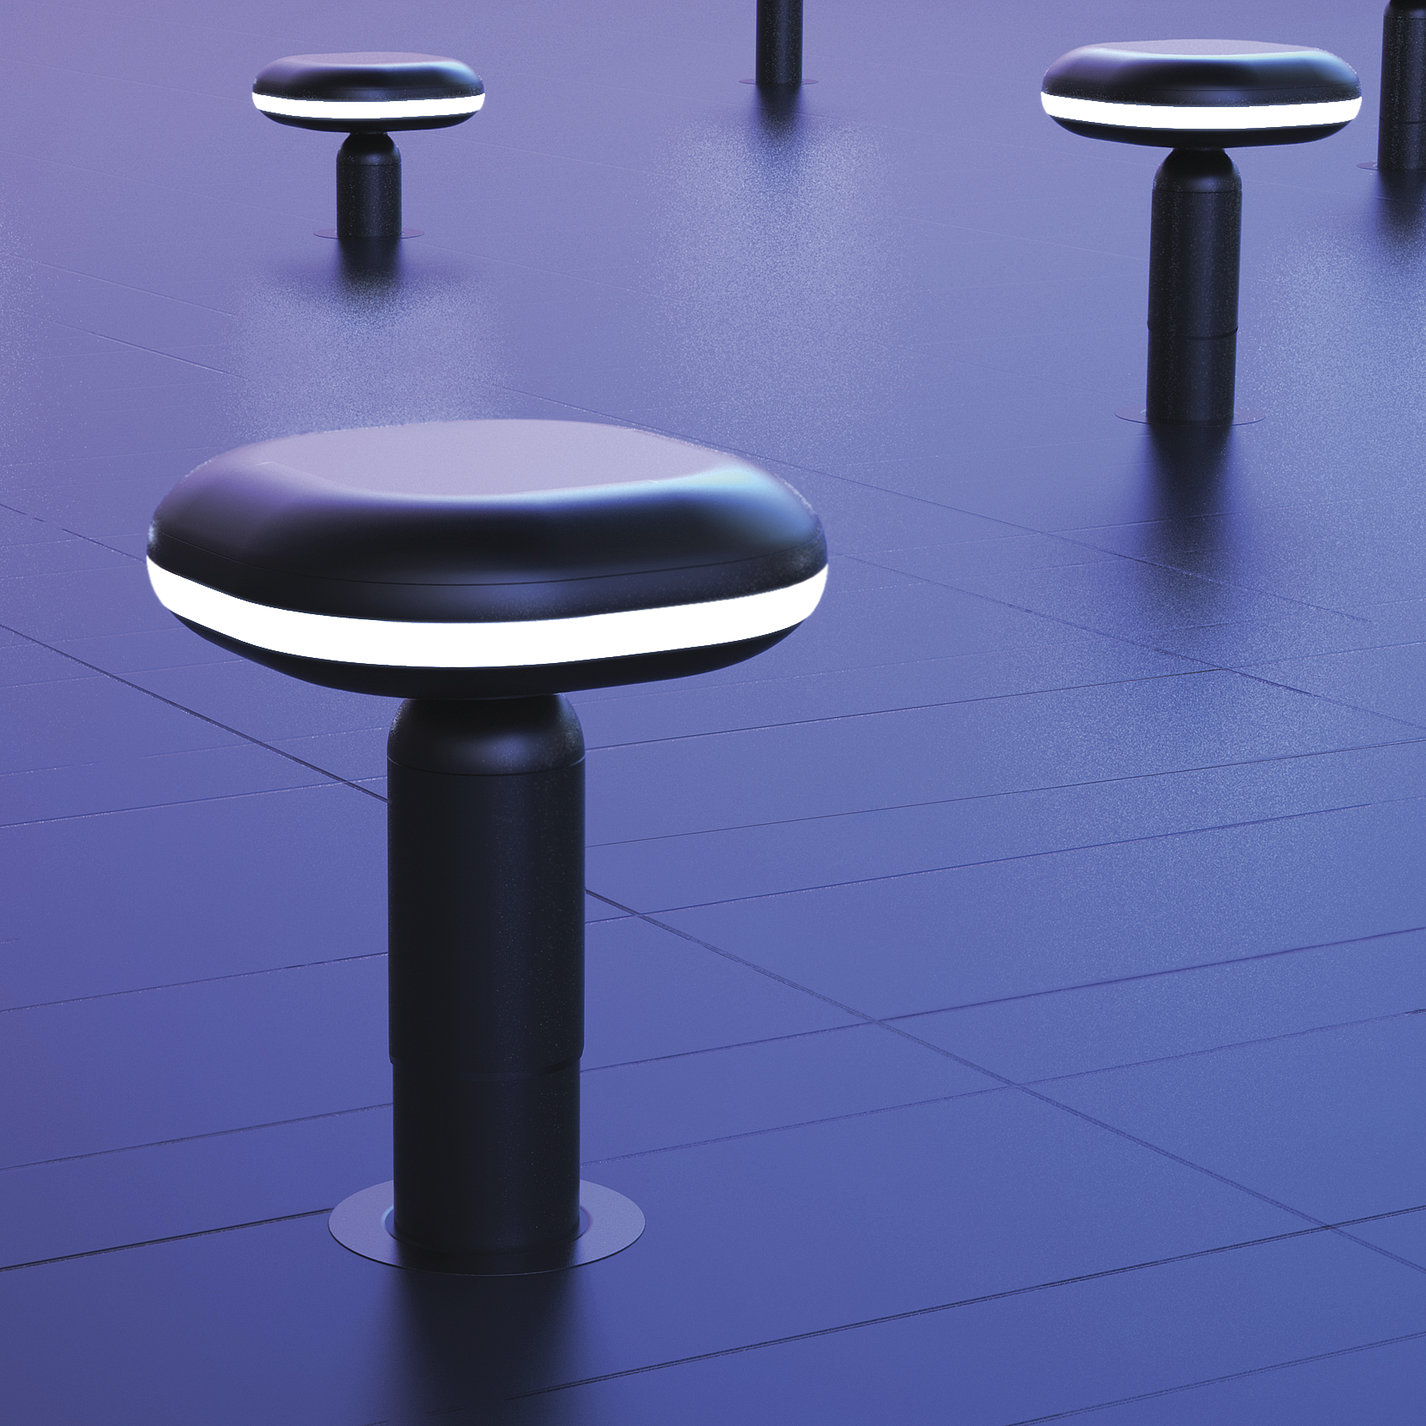 Small World - Square chair installation art | Red Dot Design Award